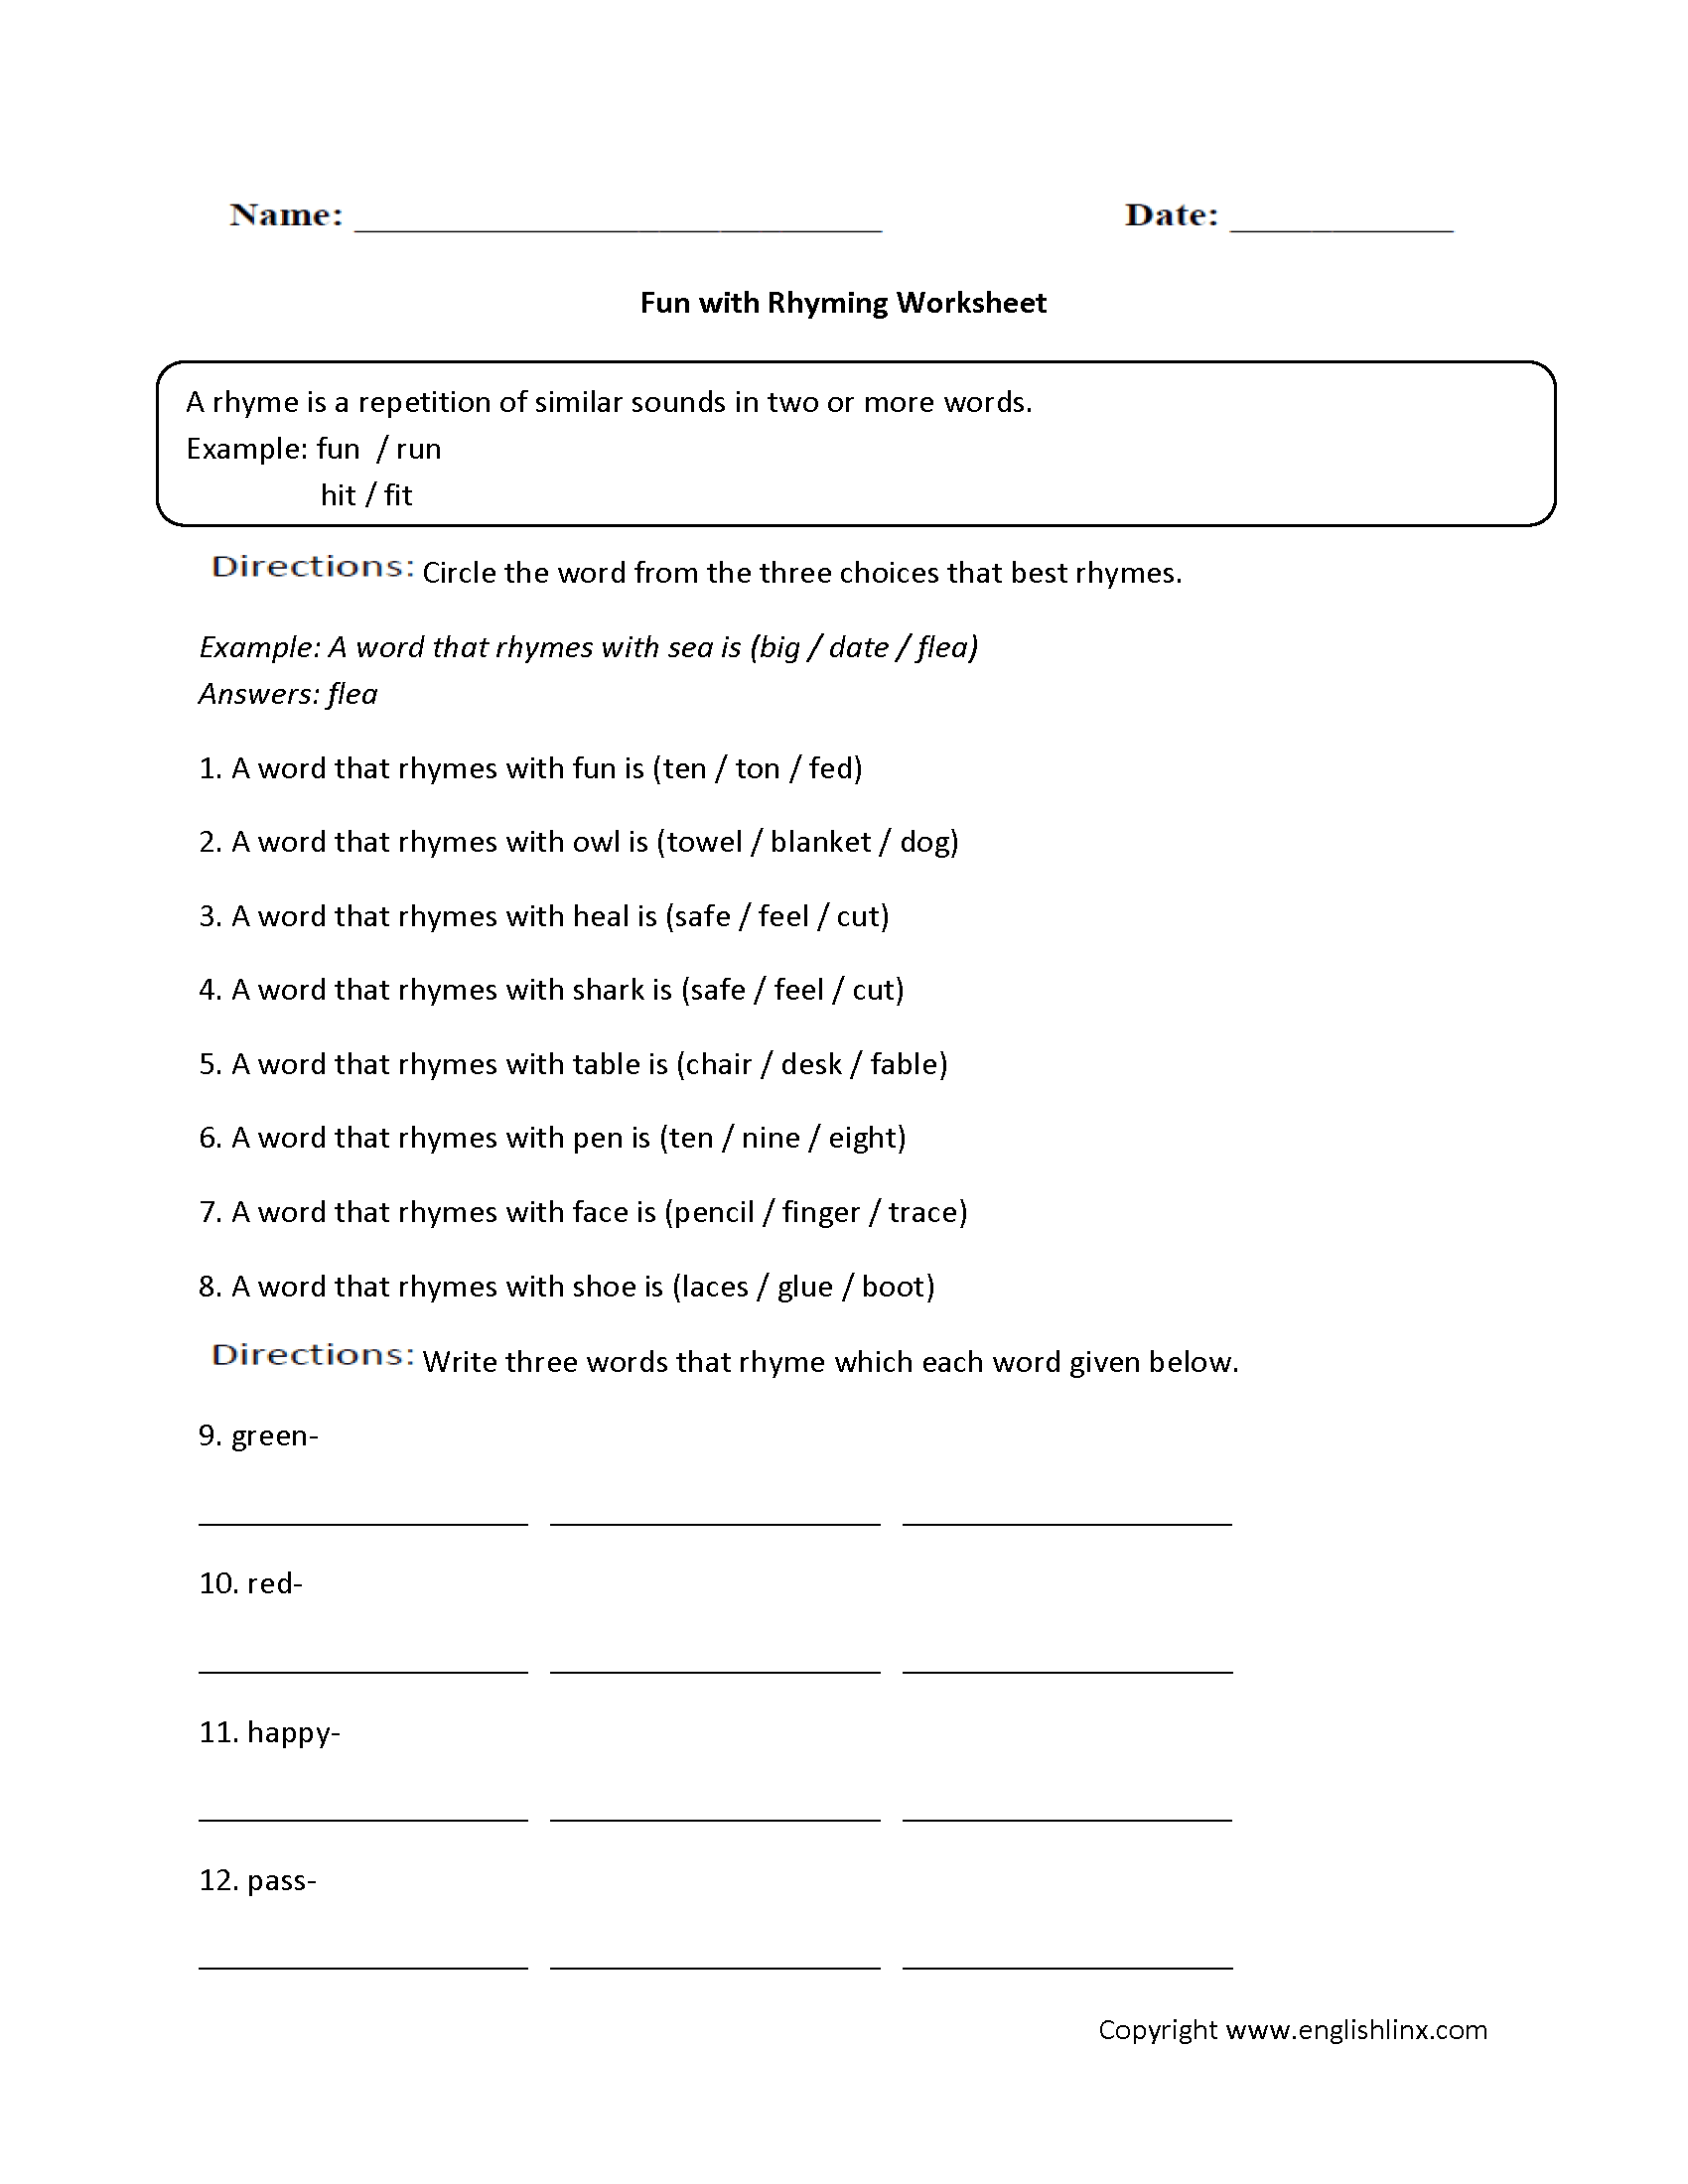 worksheet Poetry Worksheets Middle School englishlinx com rhyming worksheets grades 9 12 worksheets